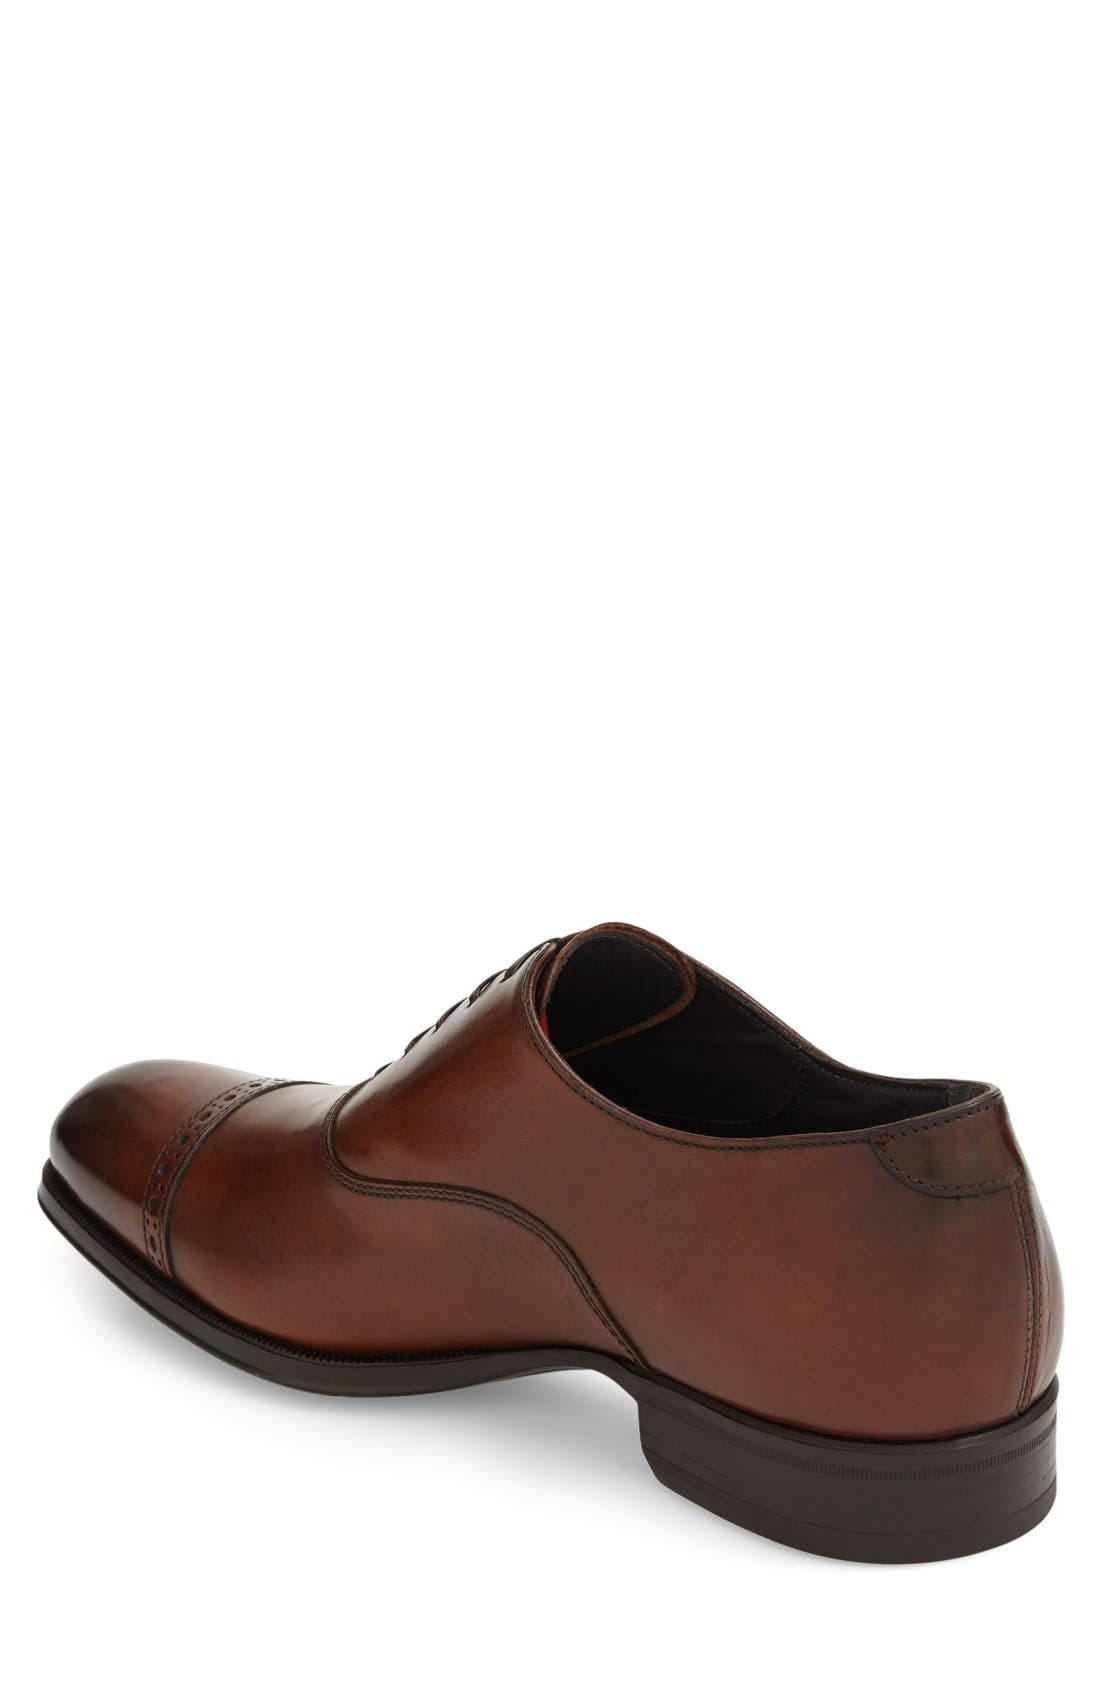 'Derek' Cap Toe Oxford,                             Alternate thumbnail 2, color,                             Tan